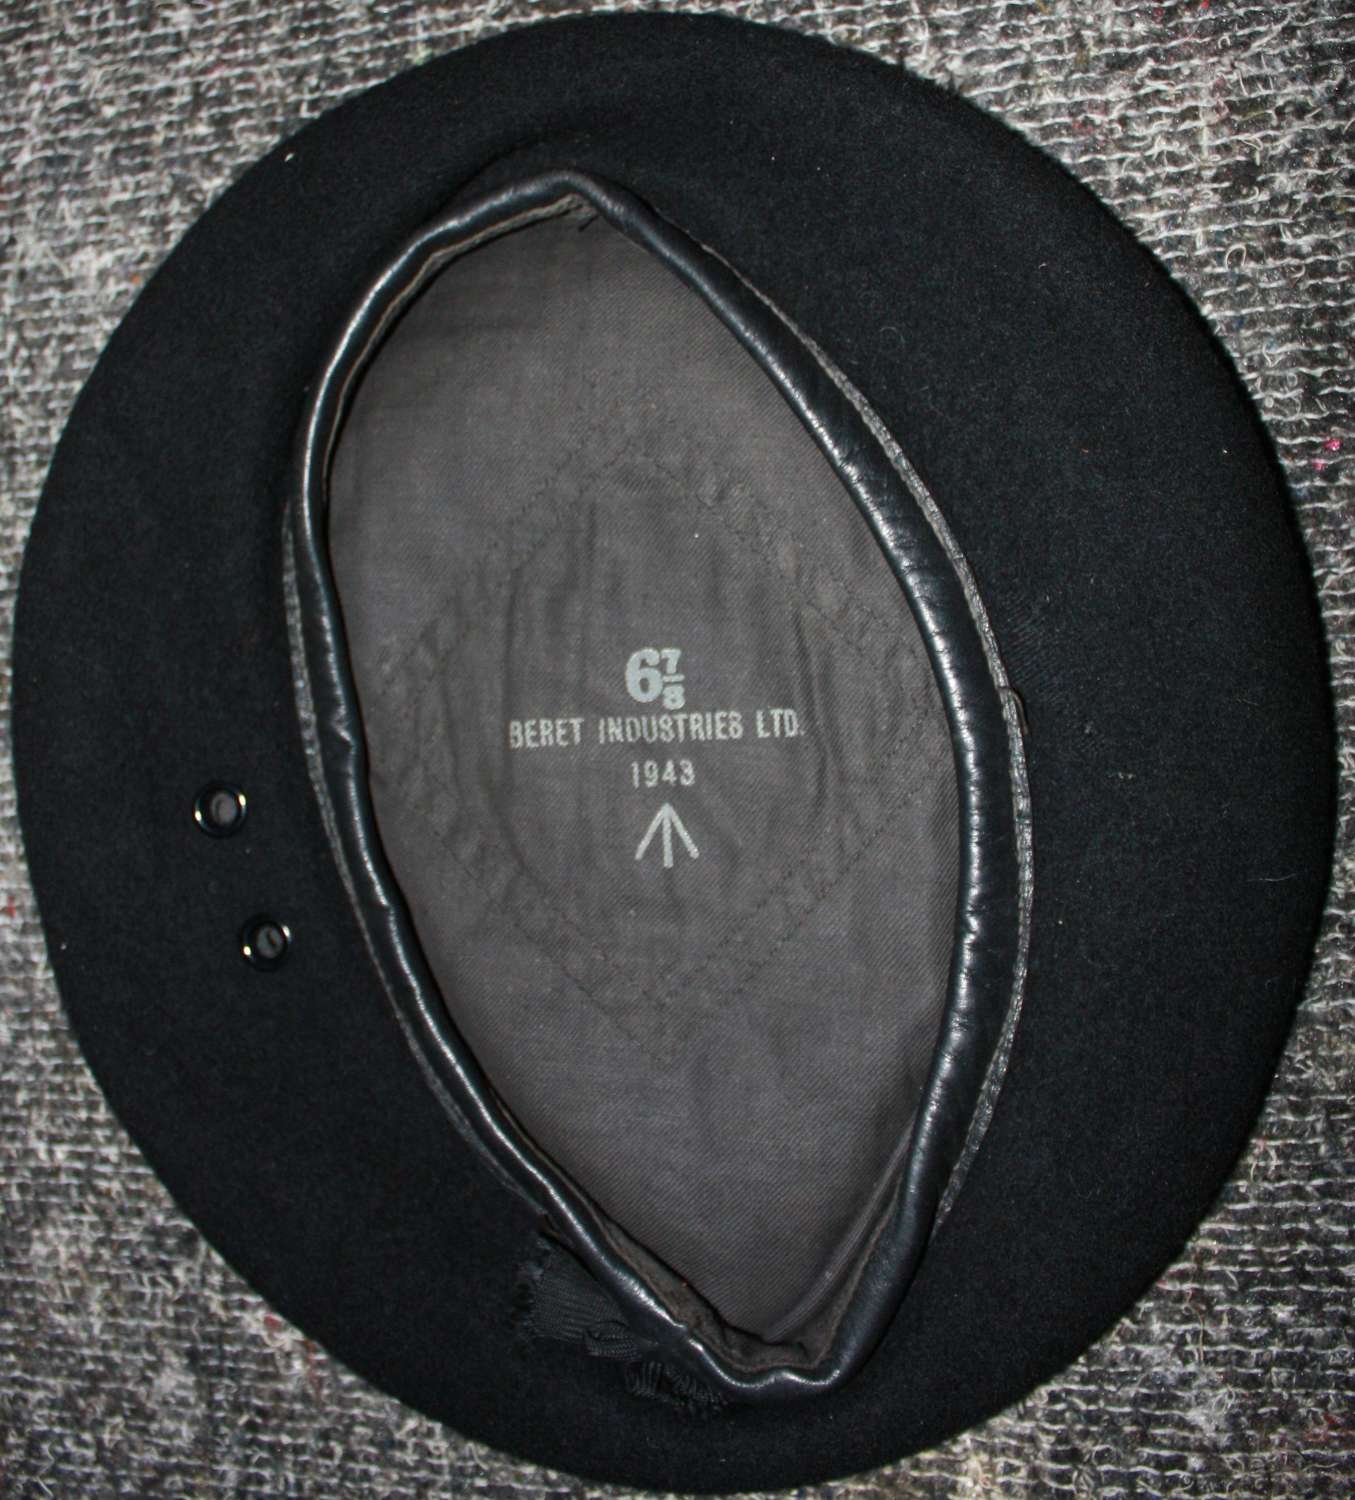 A VERY GOOD 1943 DATED RTR / RAC BLACK BERET 6 7/8